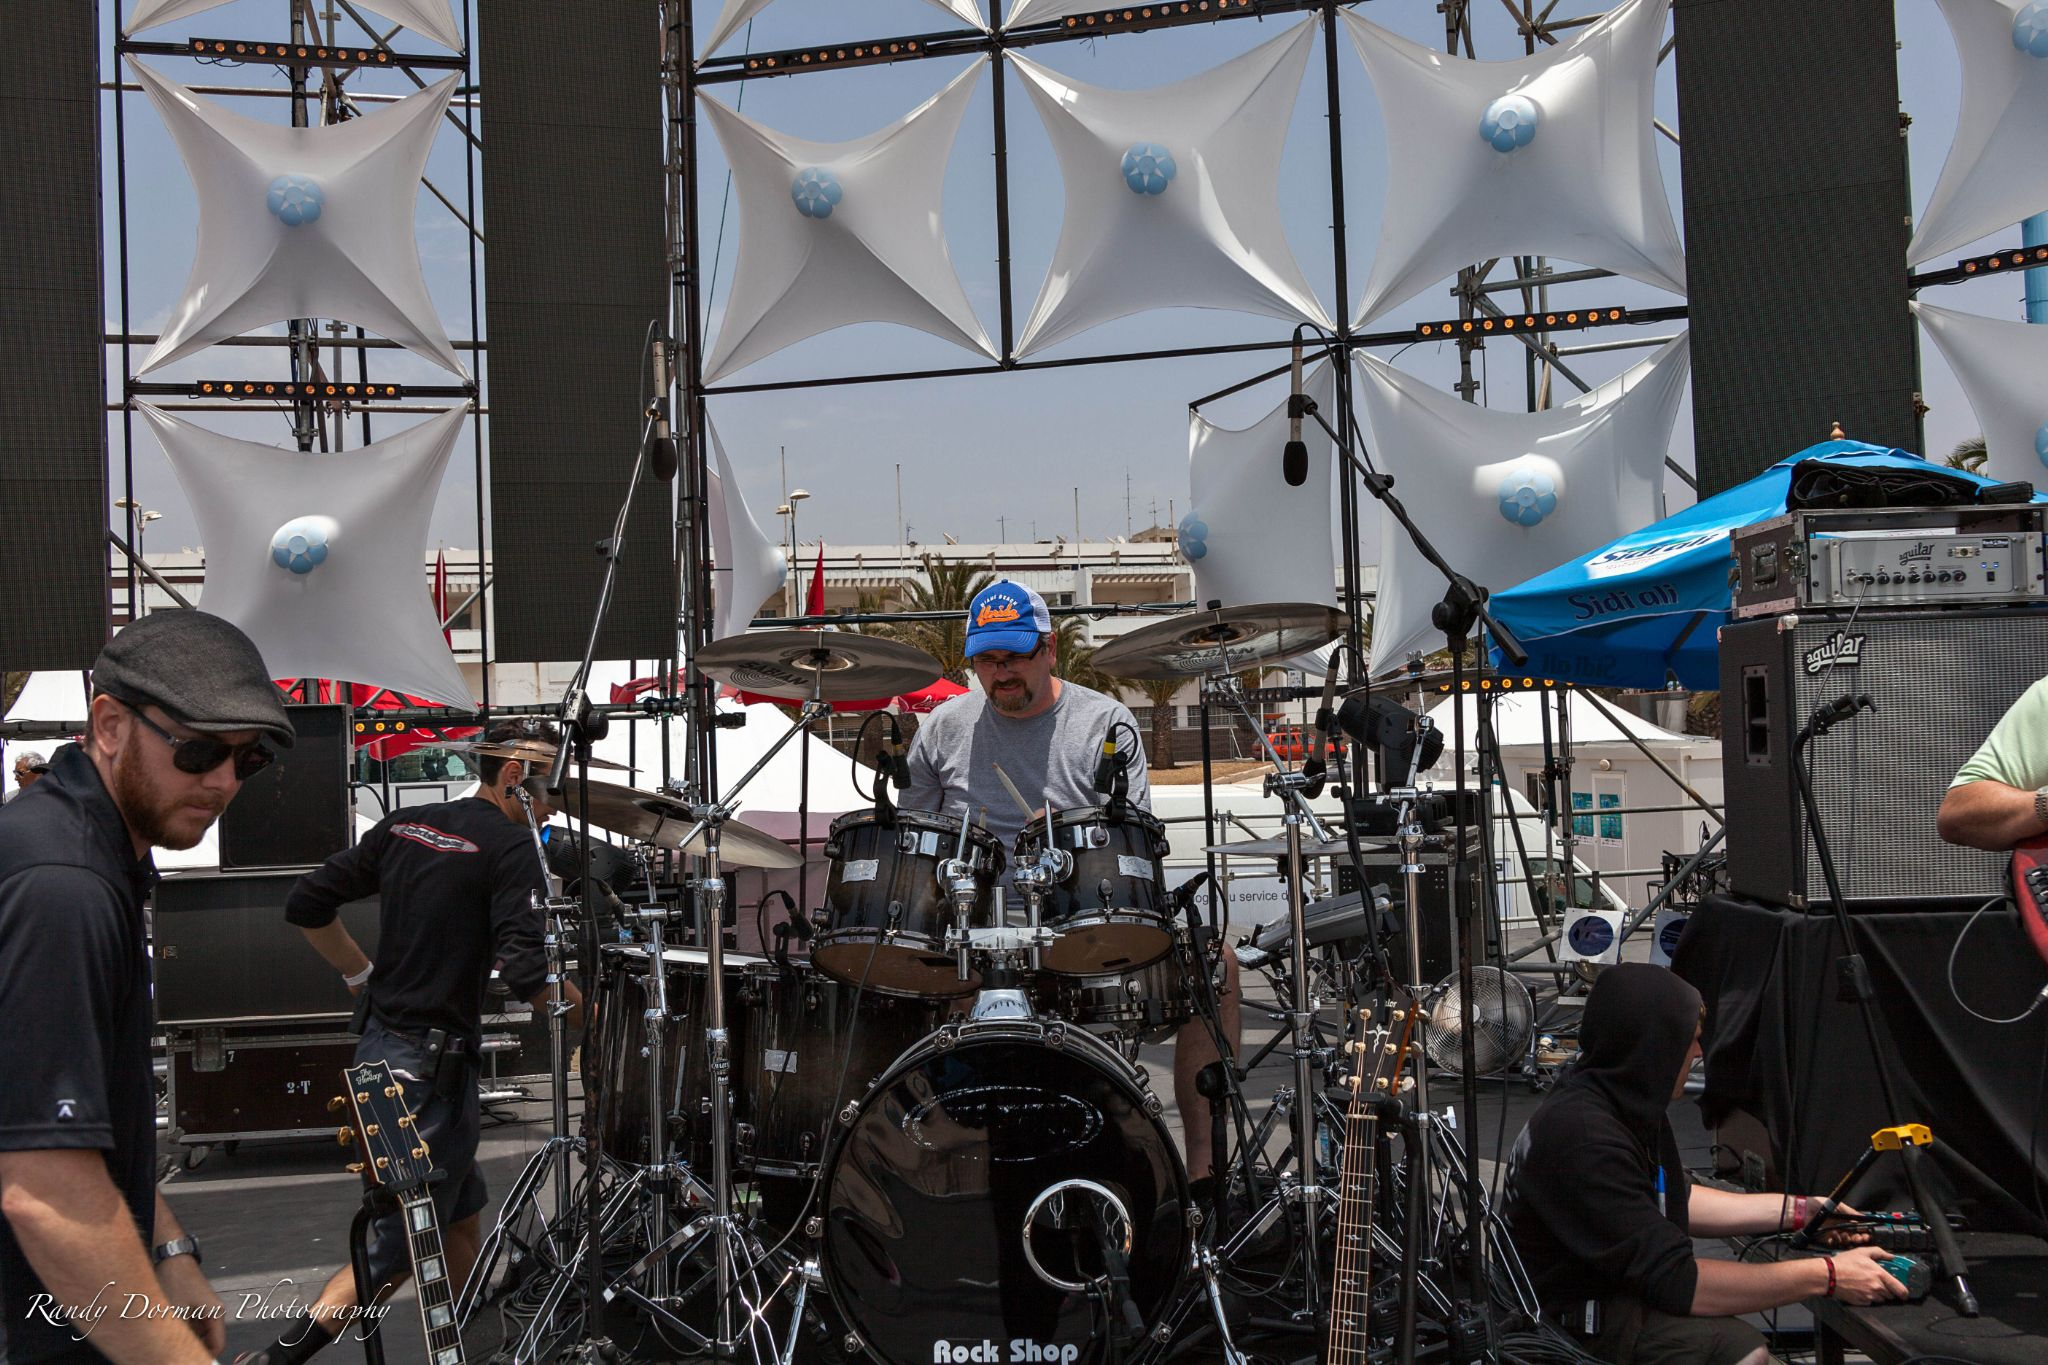 Mike Zimmerman on stage in Morocco by Randy Dorman